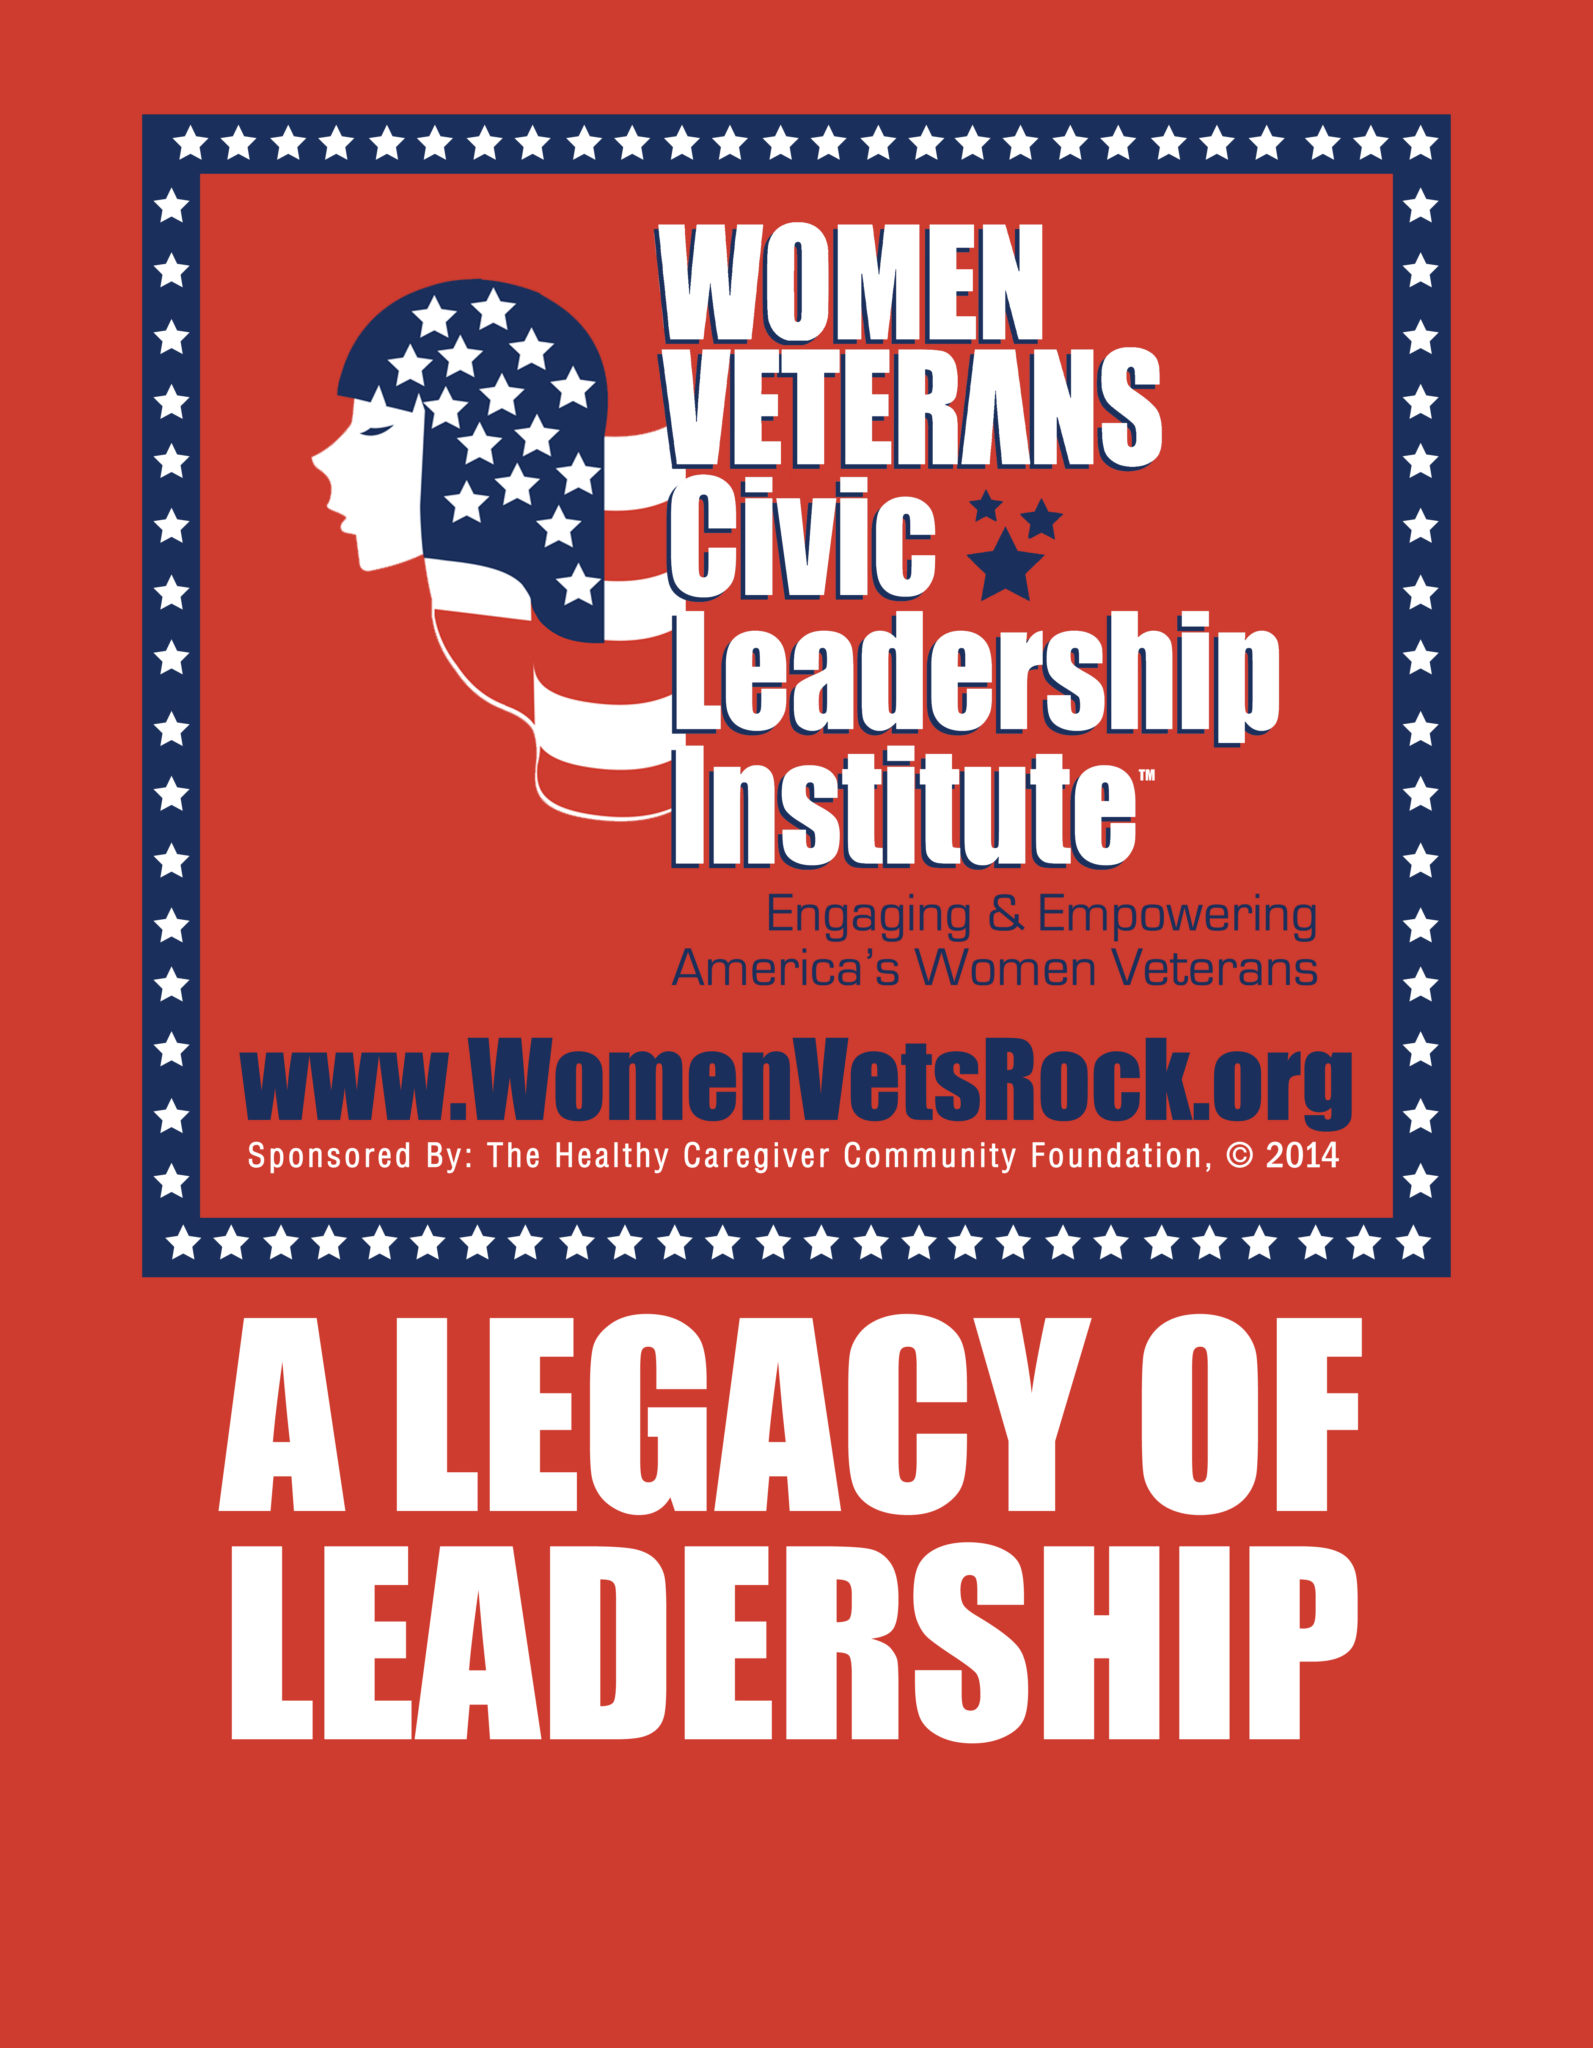 Women Veterans Civic Leadership Institute